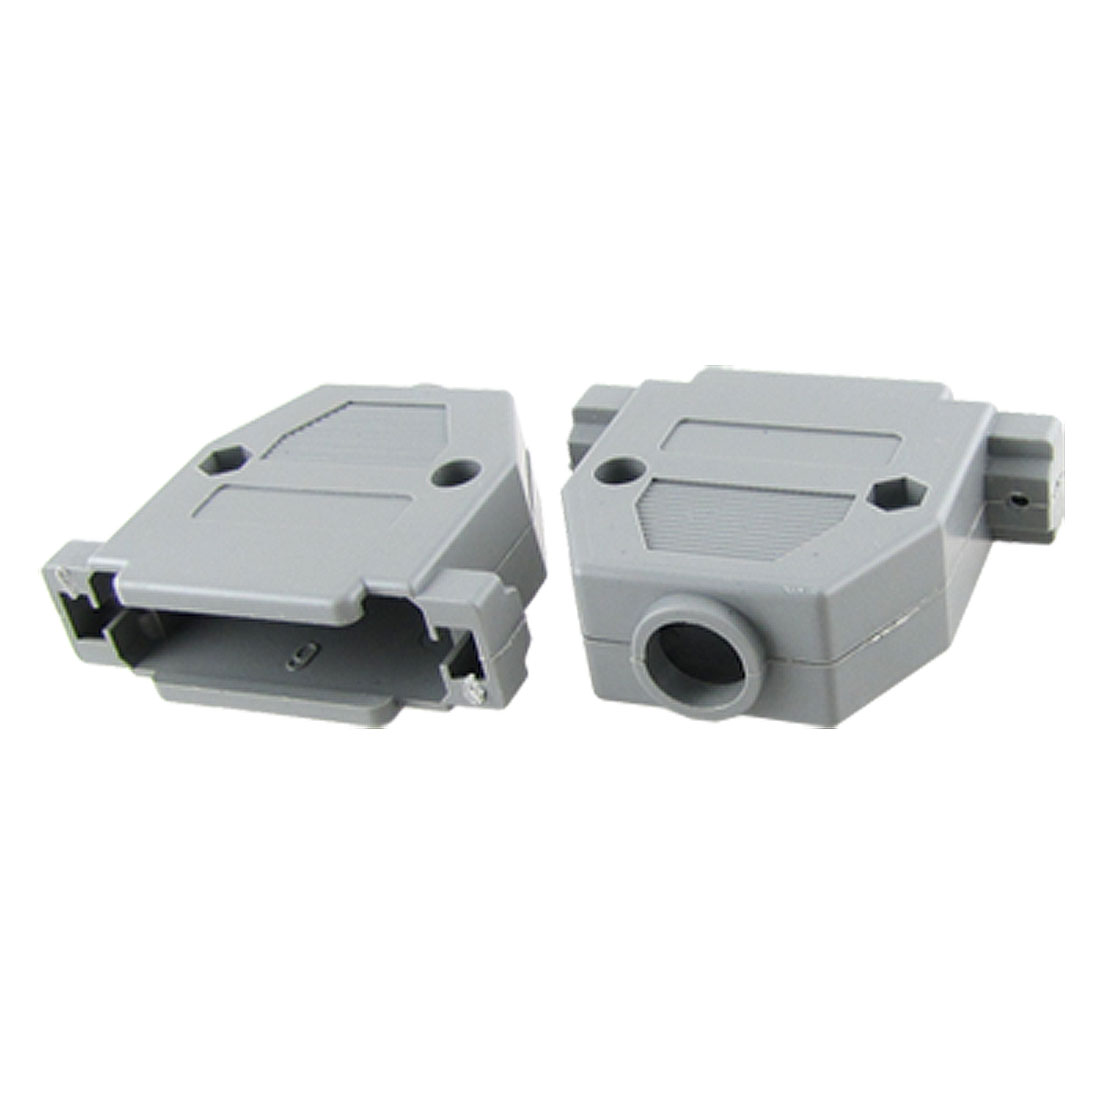 2 Pcs DB25 Male Female Gray Plastic Hoods Shell w Screws